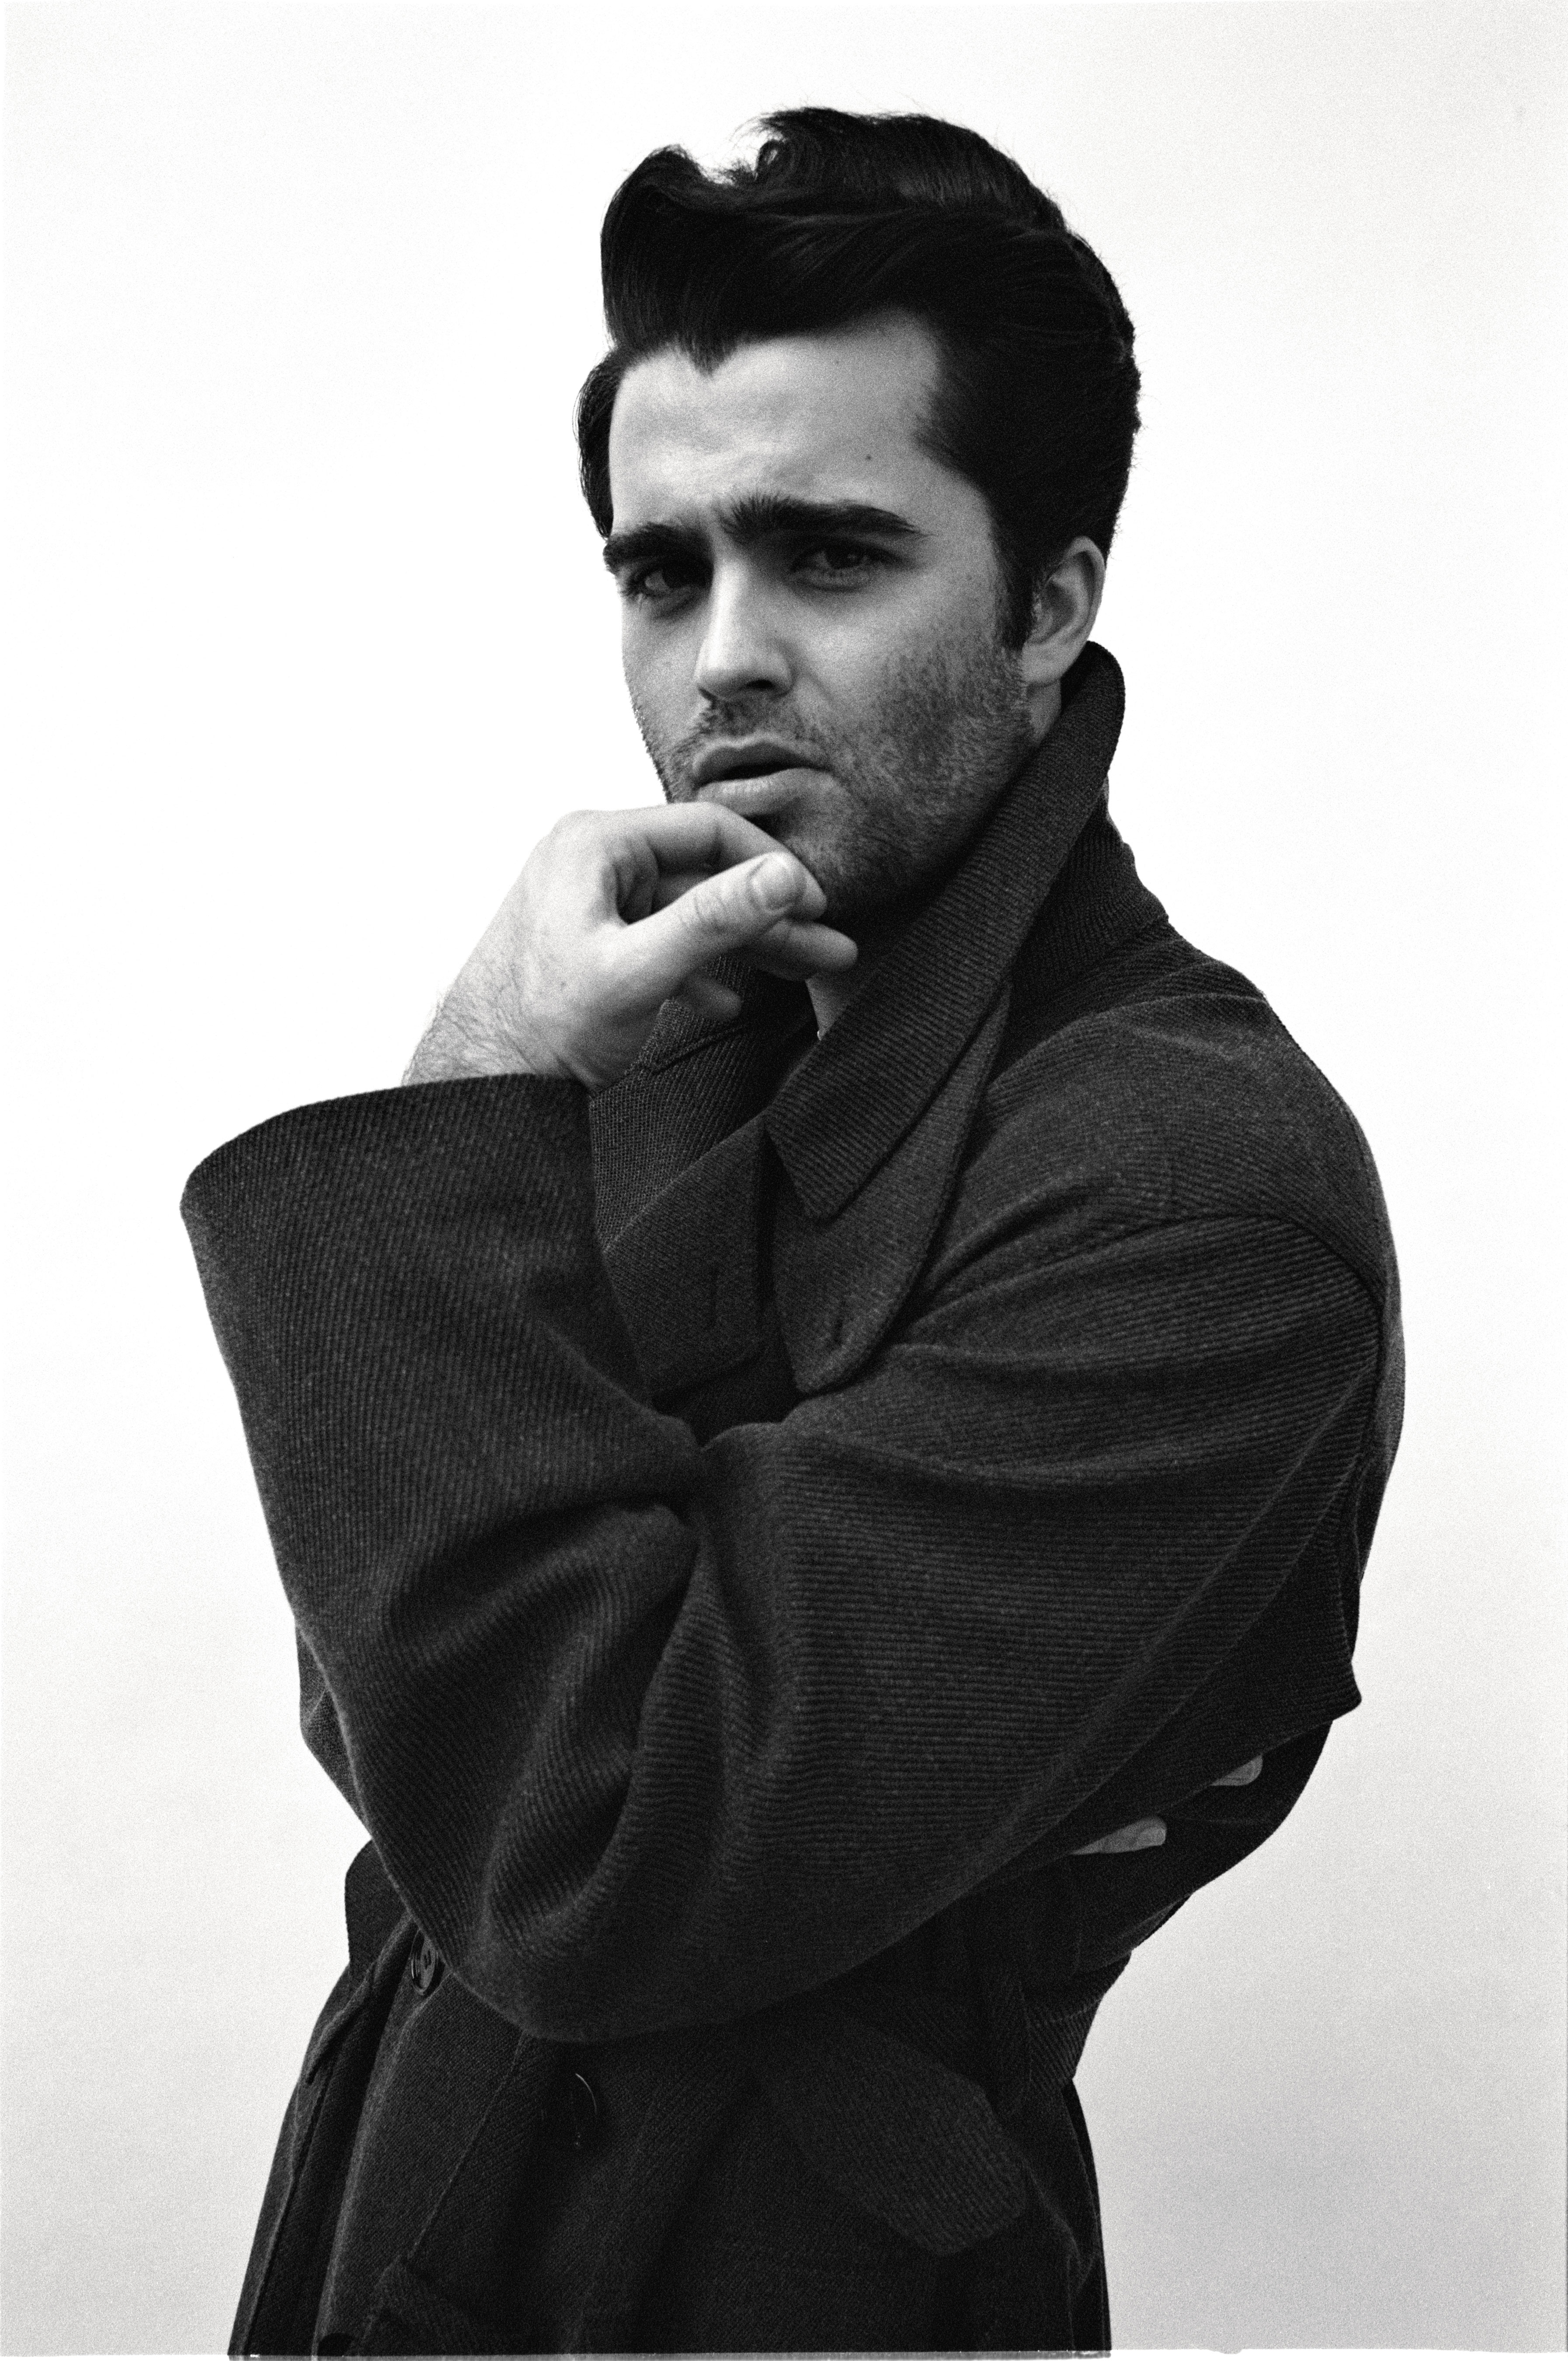 Actor Spencer Boldman Photographed by Cameron McCool for i-D magazine The Superstar Issue